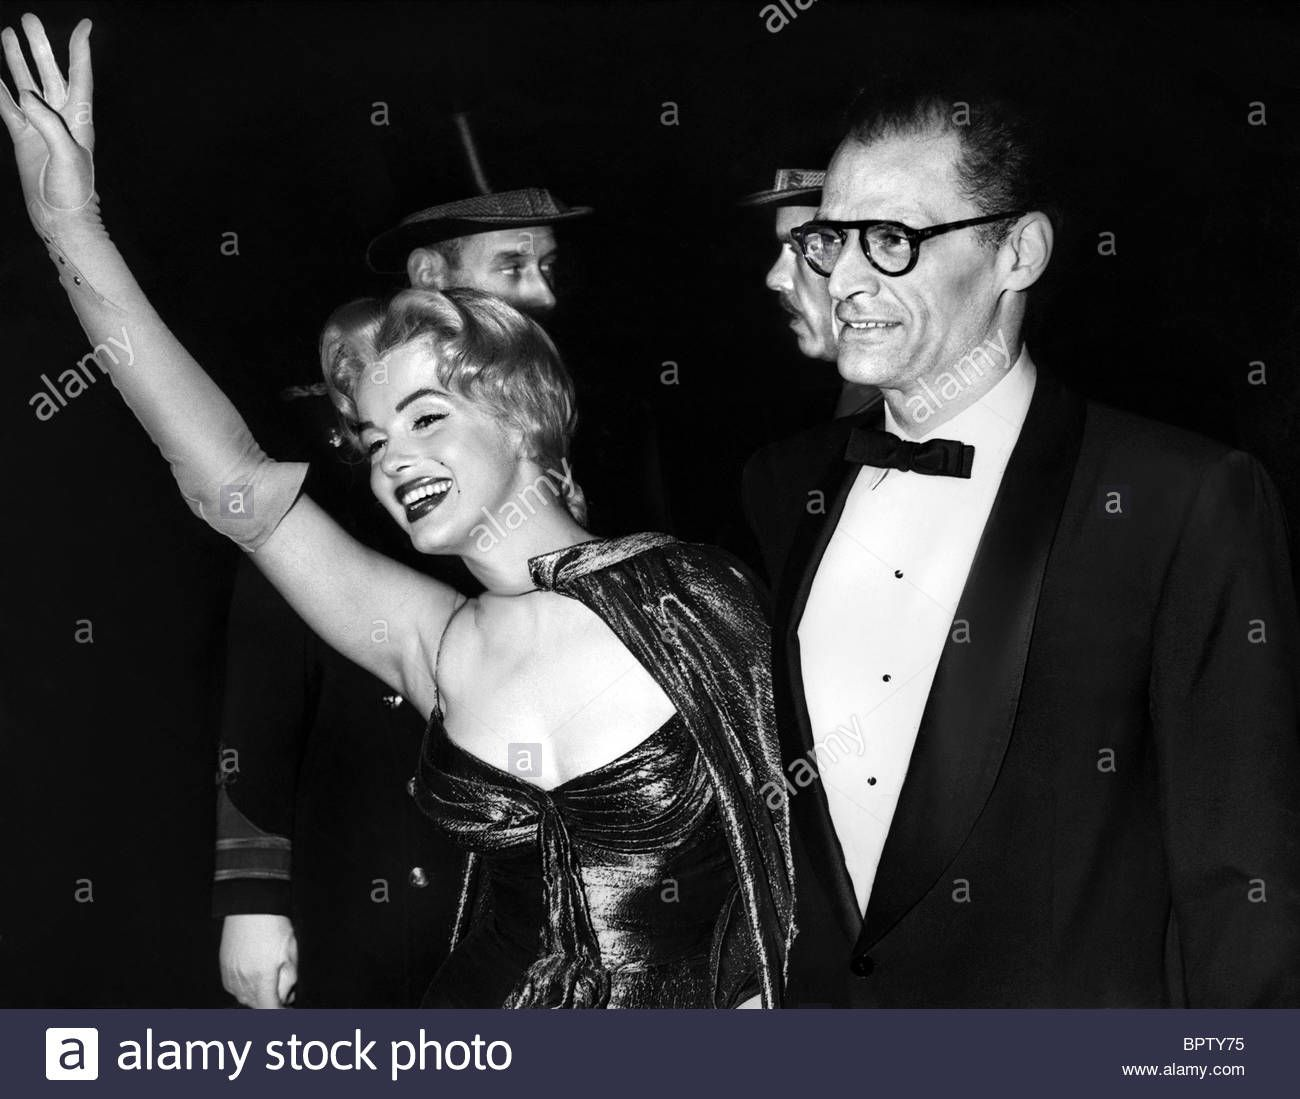 Download This Stock Image Marilyn Monroe Arthur Miller Battle Of